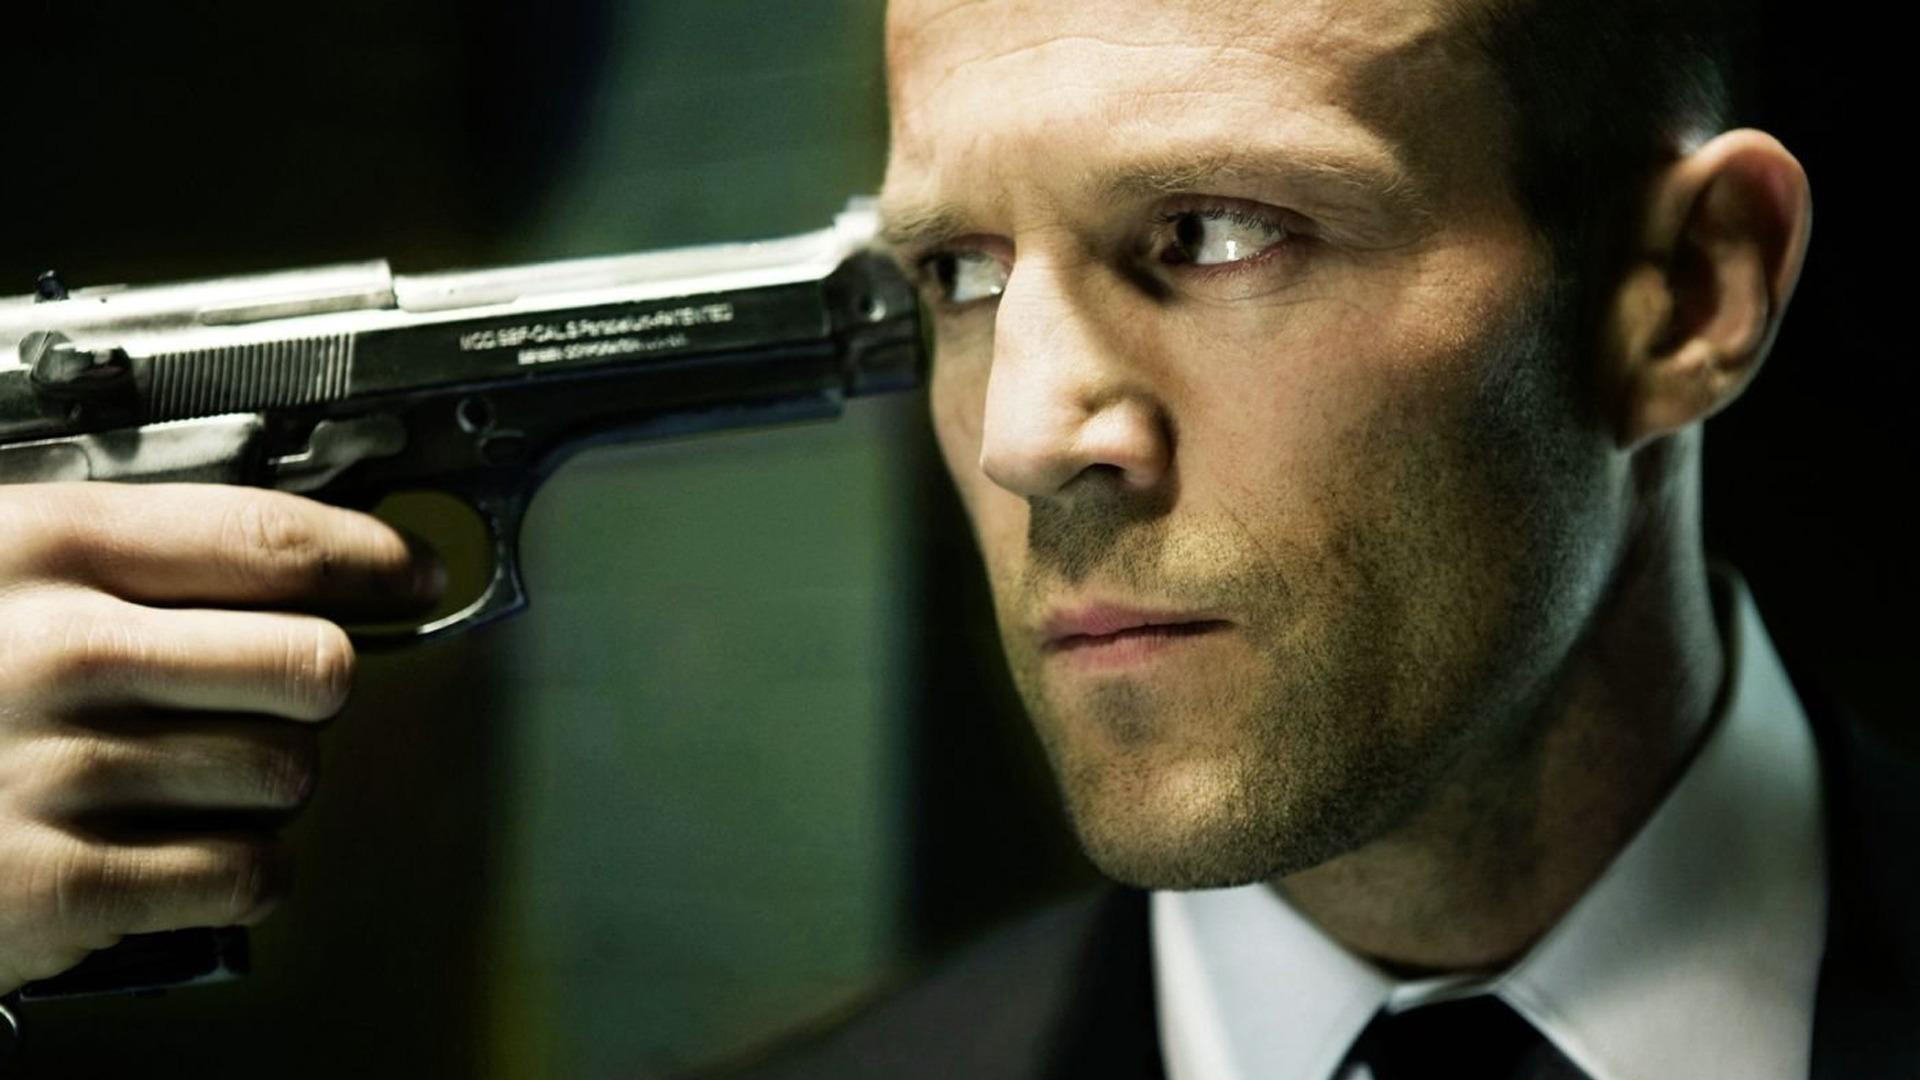 Jason Statham Transporter action movie canal+